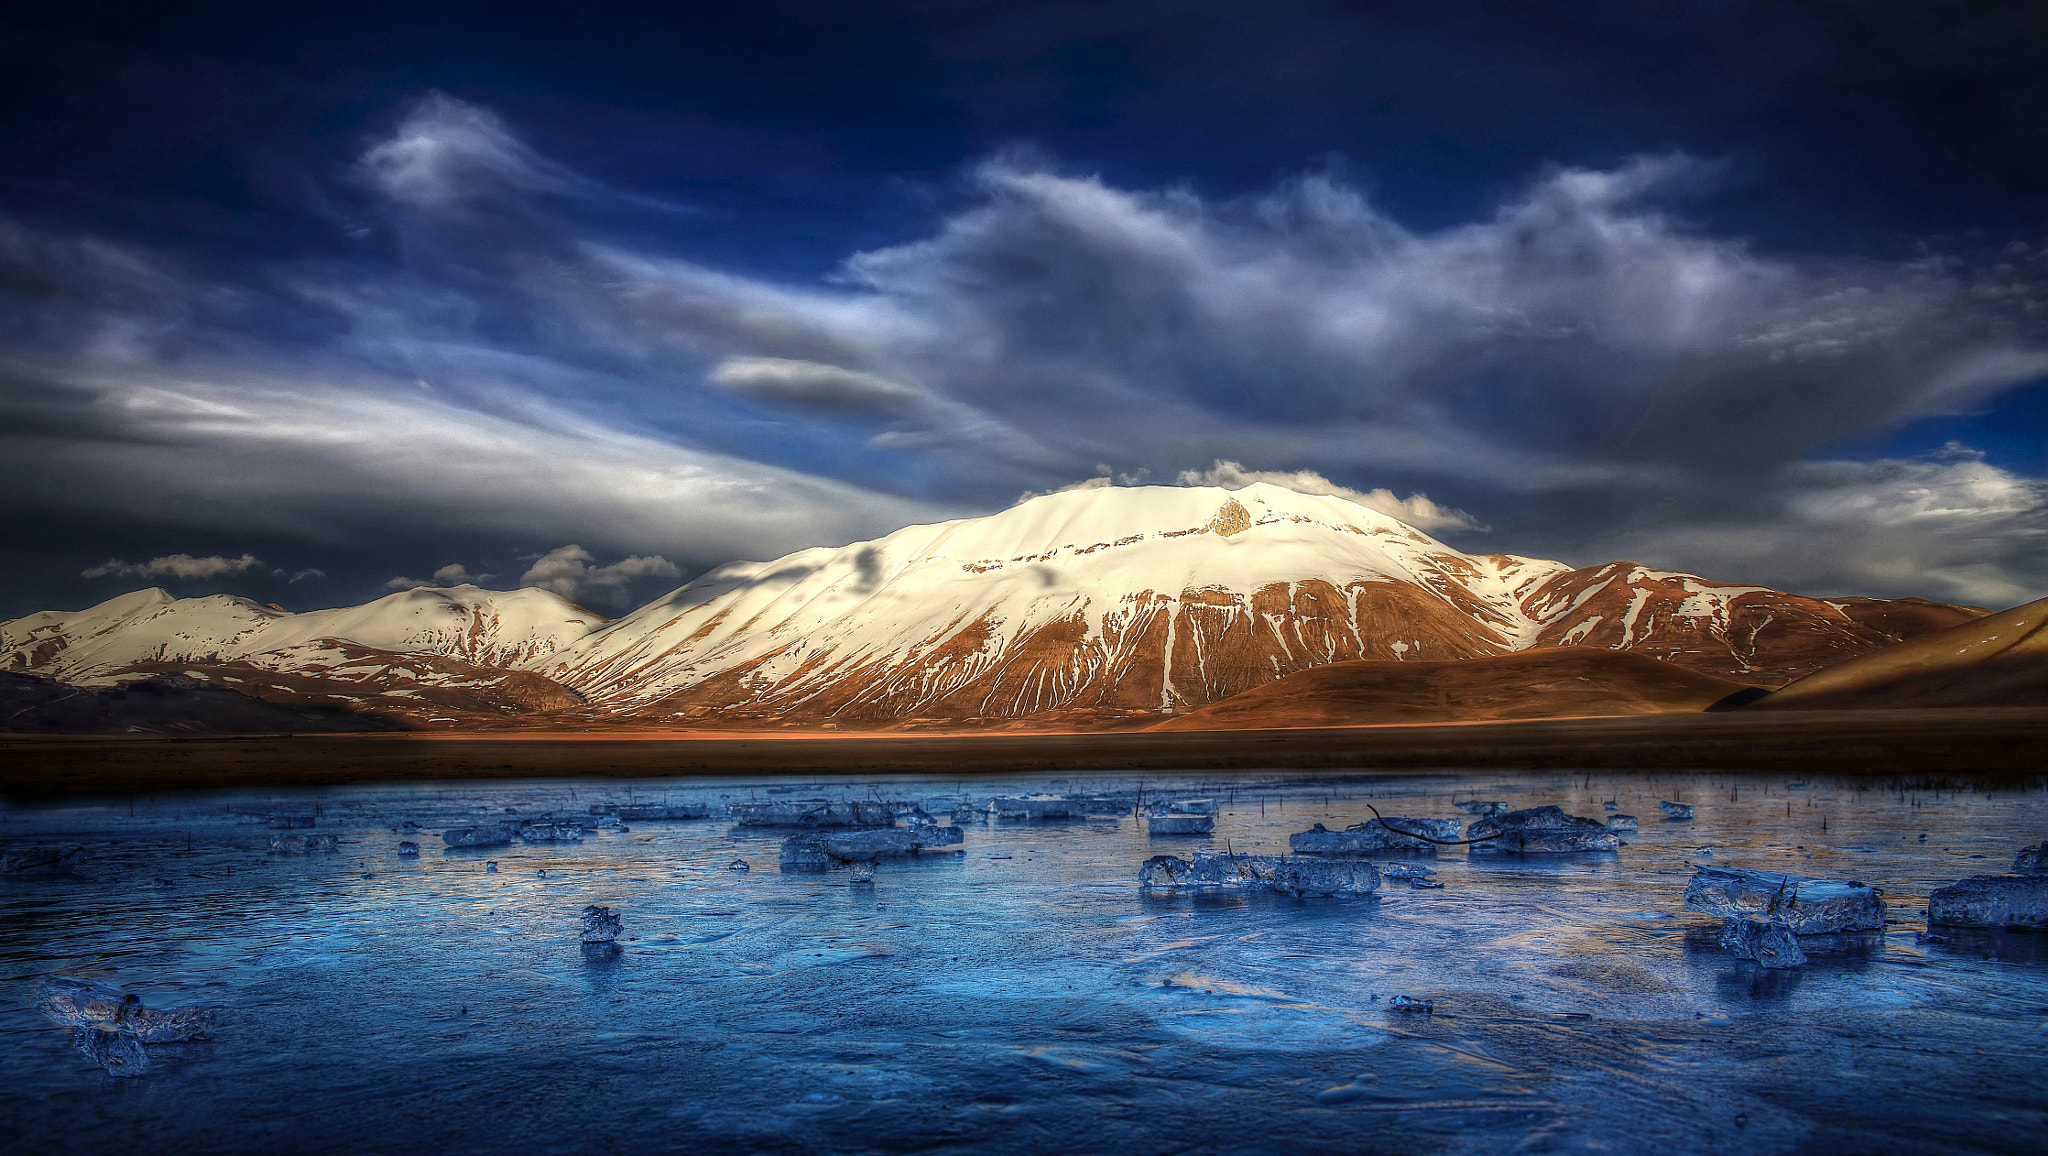 Photograph Ice on Ice by Russo Francesco on 500px